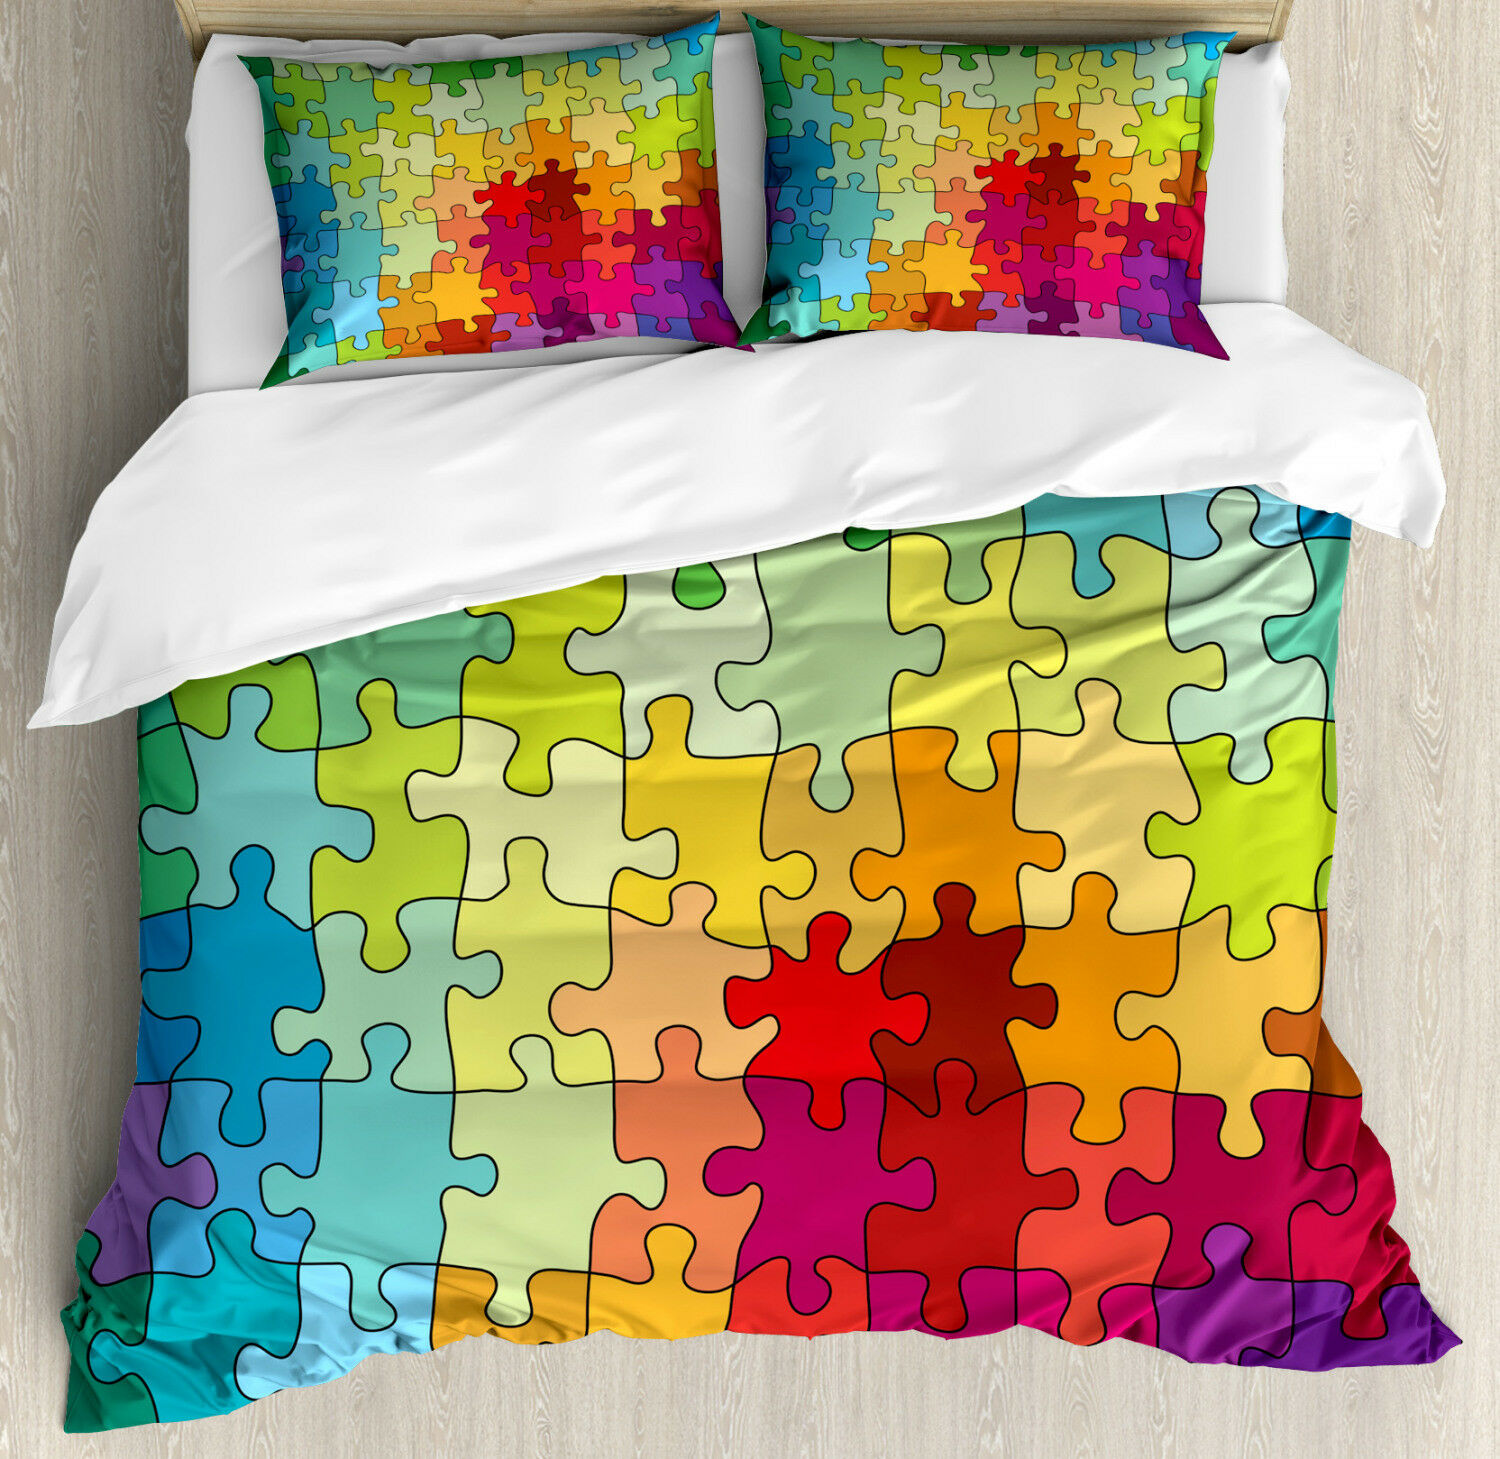 Abstract Duvet Cover Set with Pillow Shams colord Hobby Puzzle Print